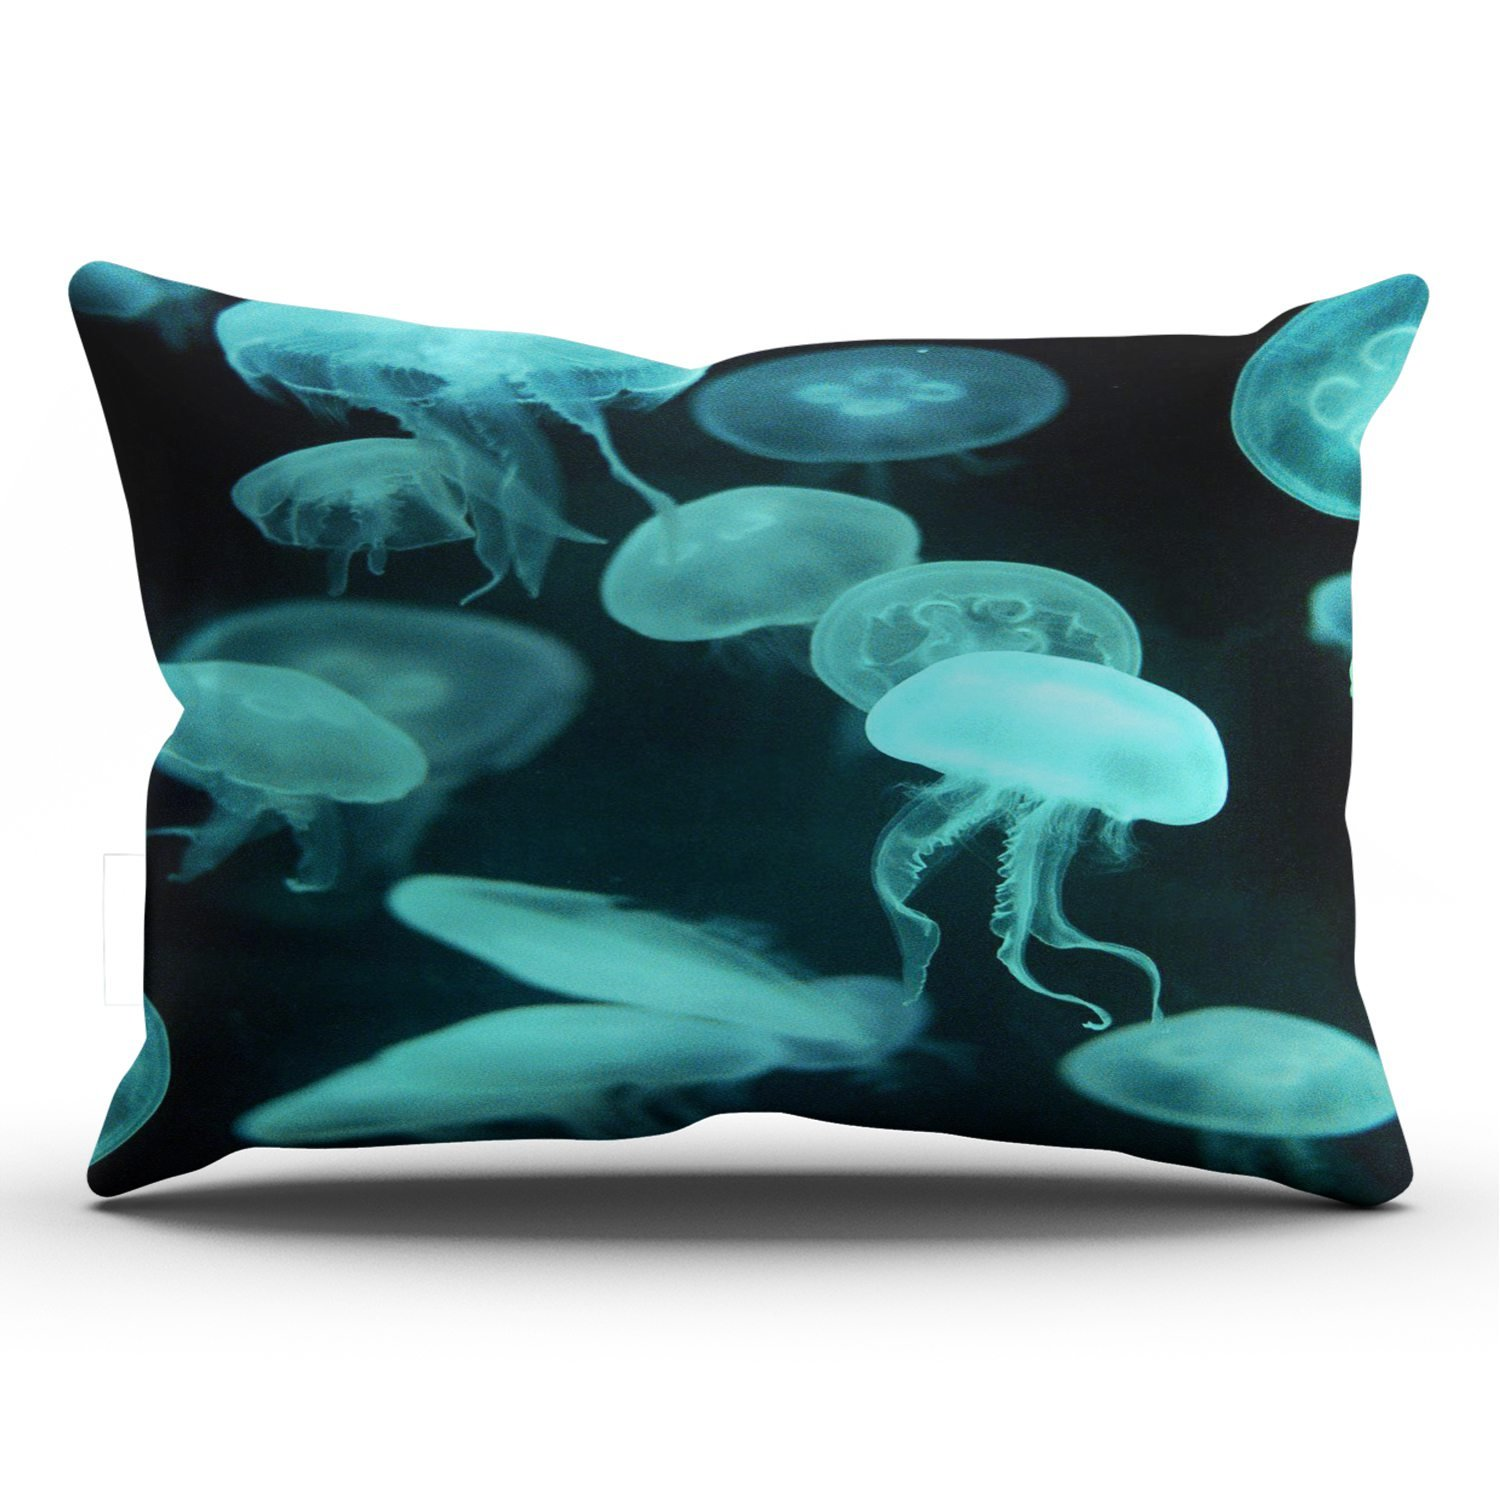 KEIBIKE Personalized Animals Jellyfish Blue Transparent Rectangle Decorative Pillowcases Printed Zippered King Pillow Covers Cases 20x36 Inches One Sided